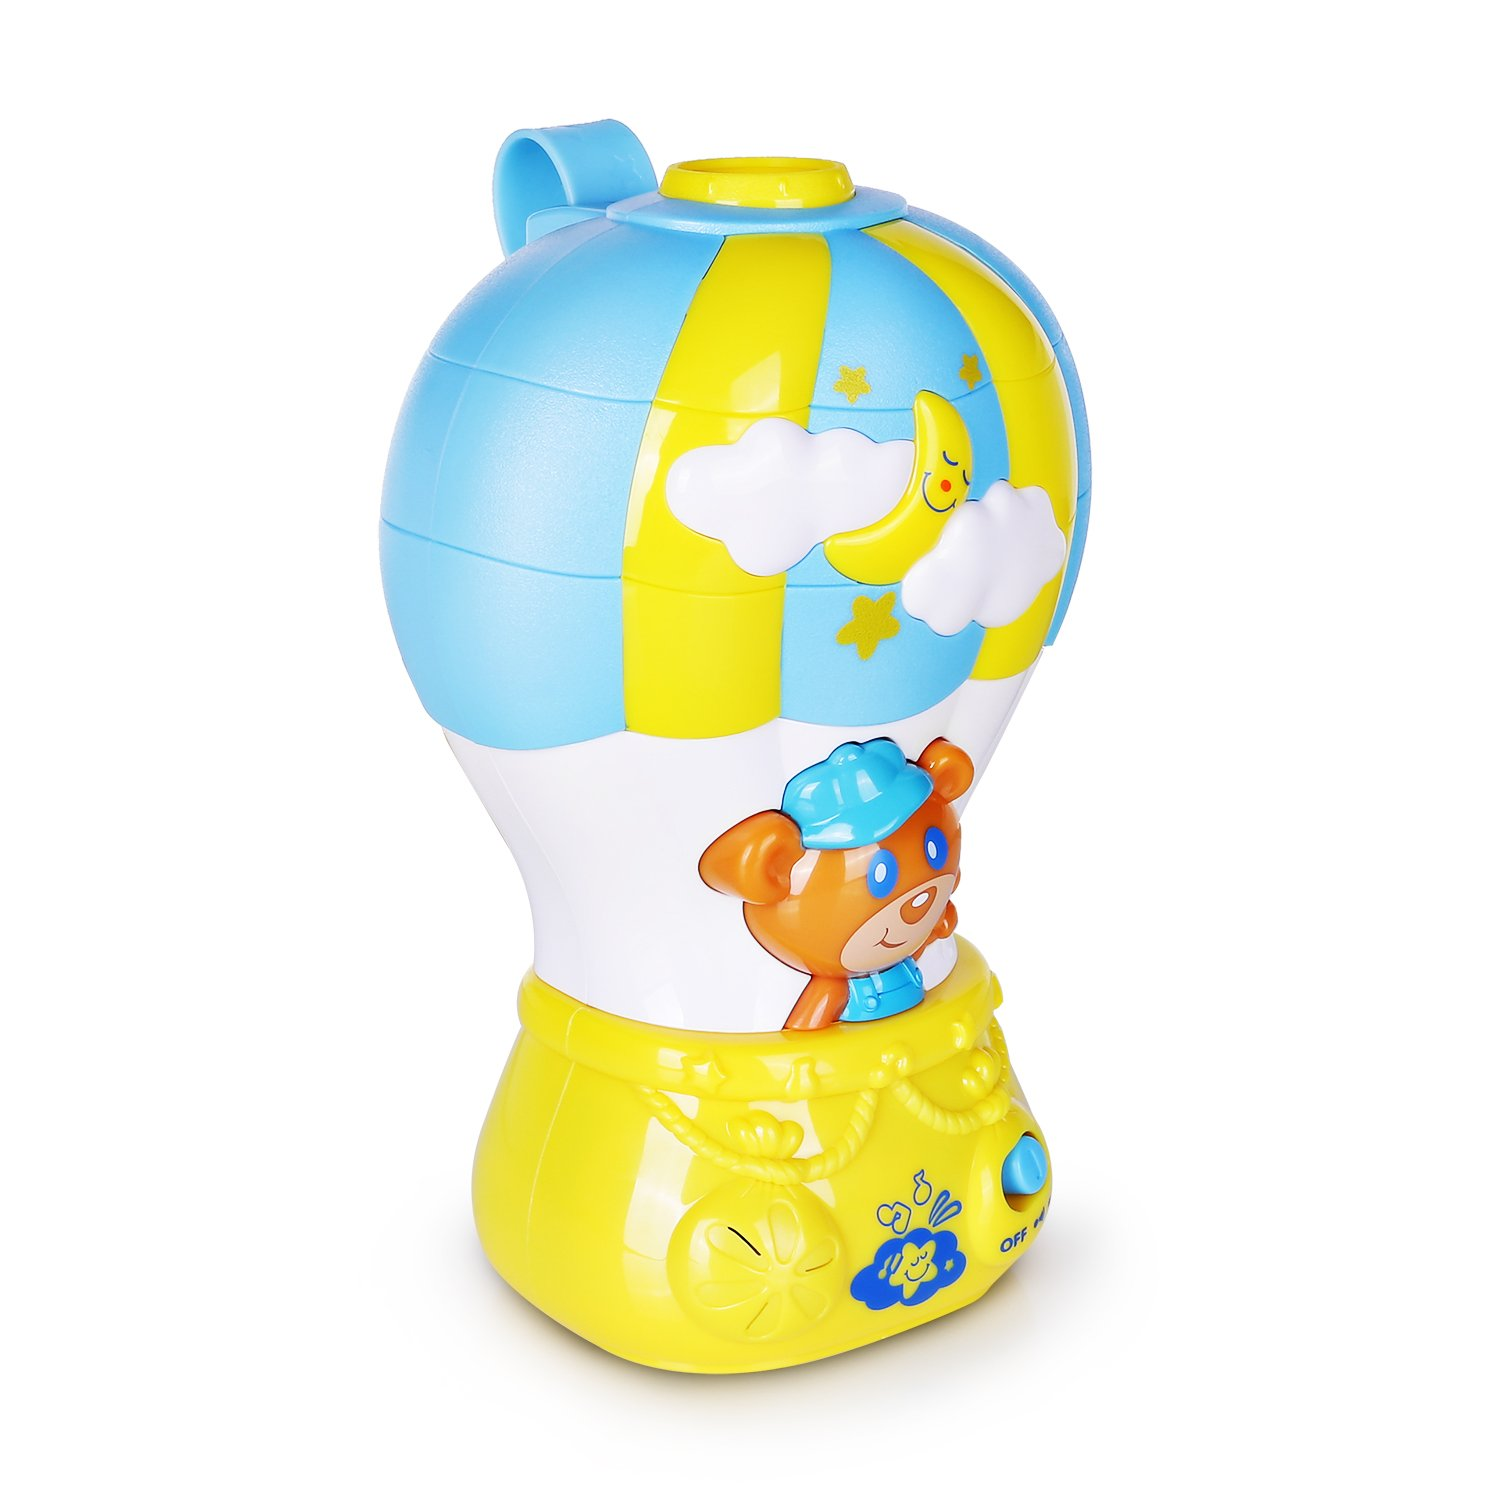 Happkid Baby Crib Soother Baby Soother for Sleep Air Balloon Light Soothe with Colored Projector and Melodies